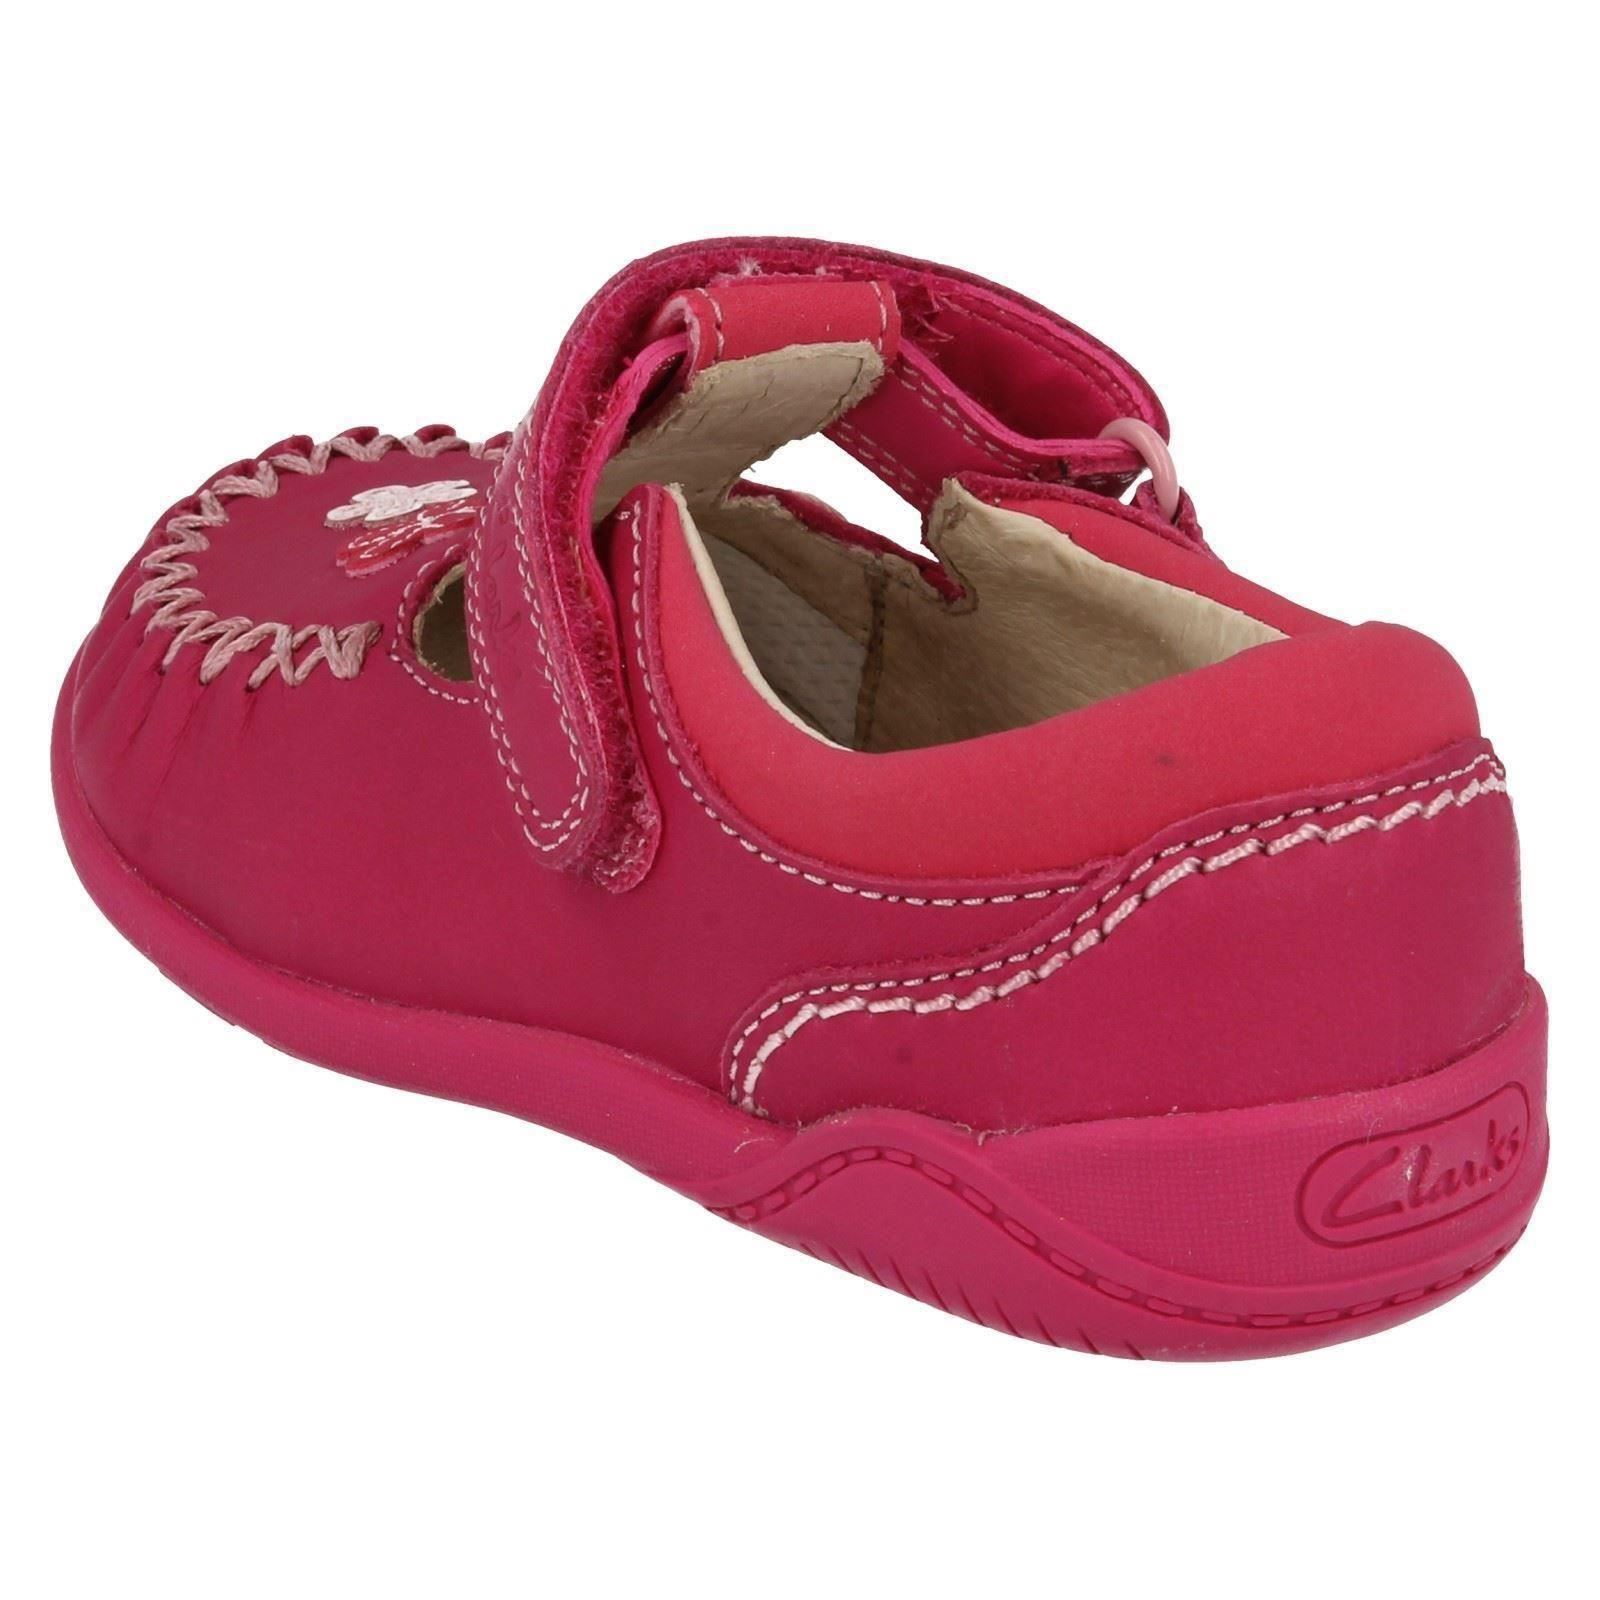 Infant Toddler Girls Clarks T-Bar First Leather Moccasin Style Shoes - Litzy Lou